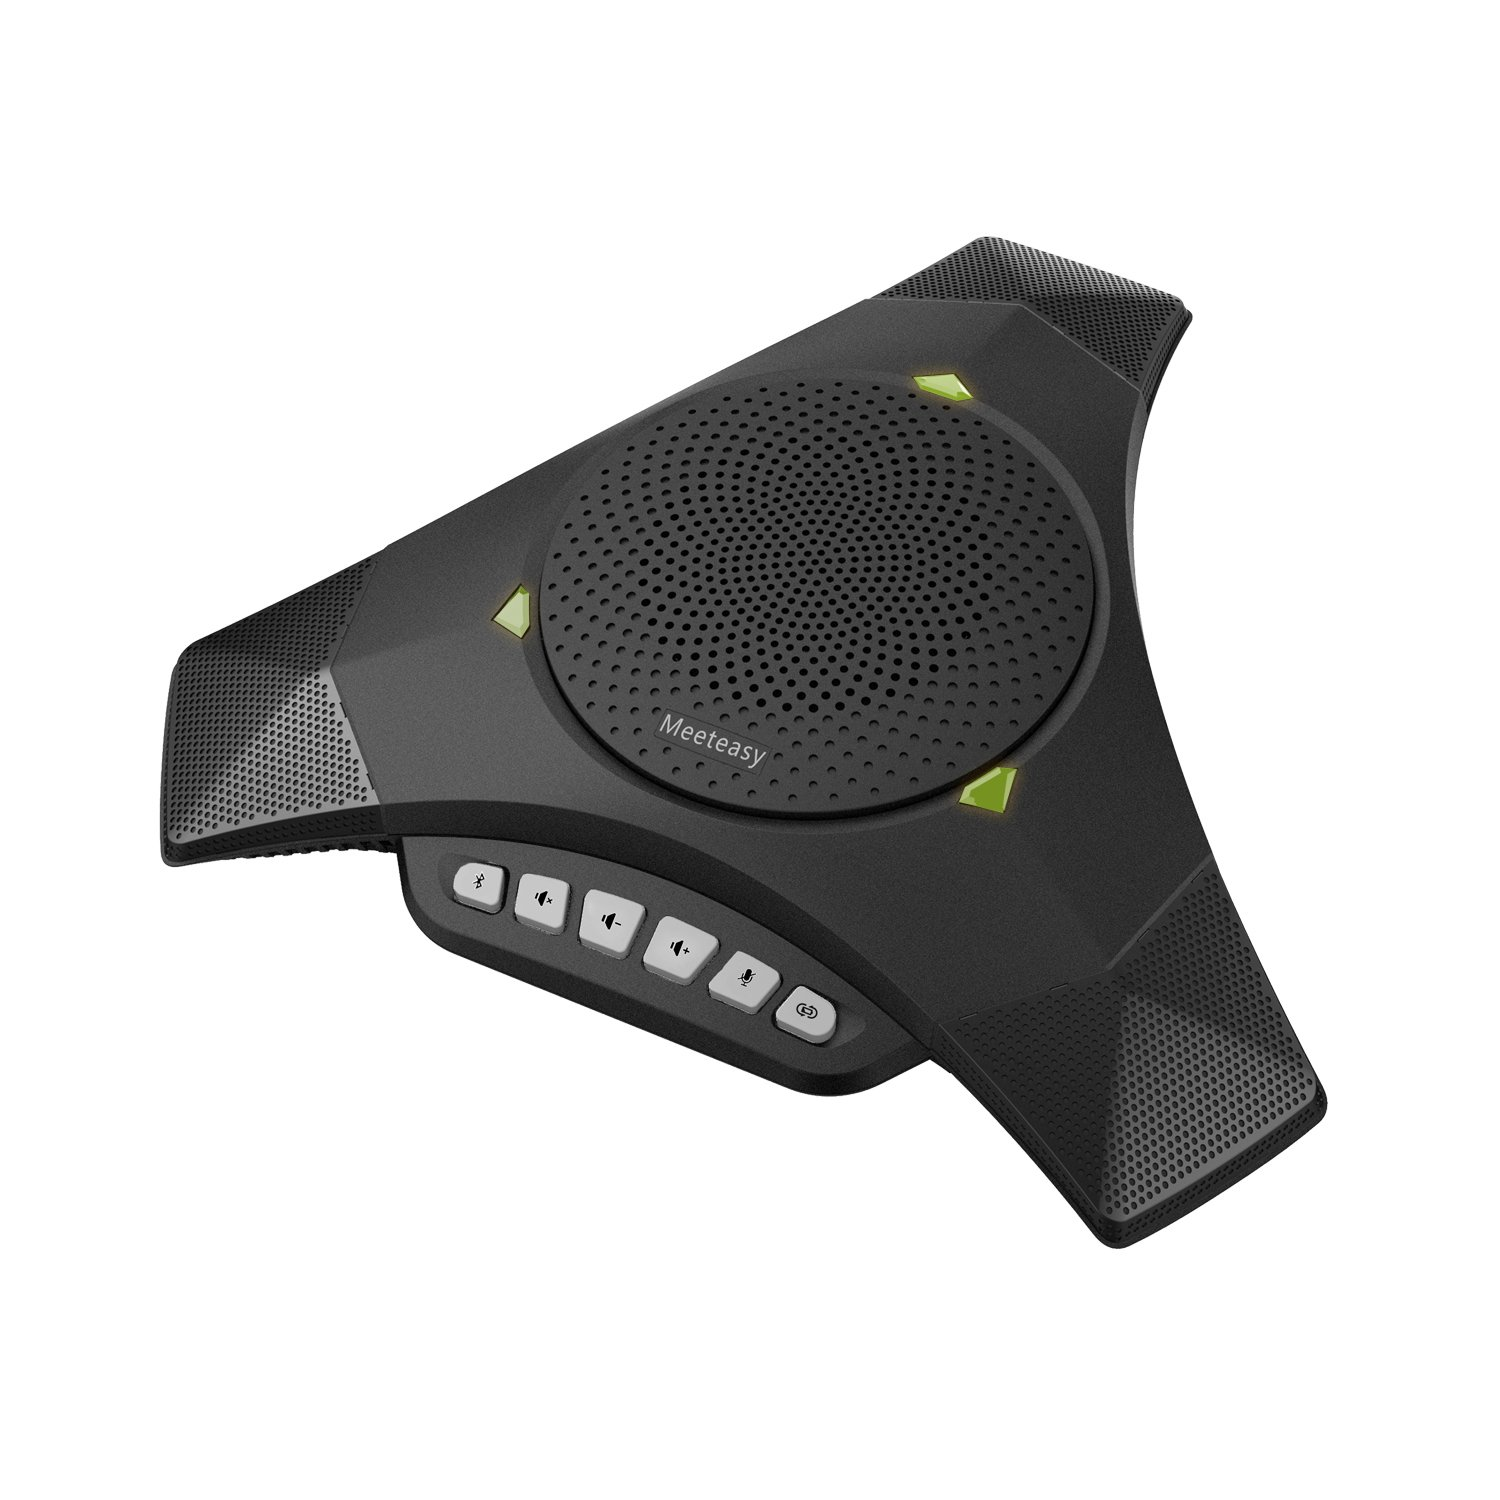 Meeteasy MVOICE 8000-B Expandable Bluetooth Speakerphone for Softphone and Mobile Phone Conference Call (Expansion mic NOT included)